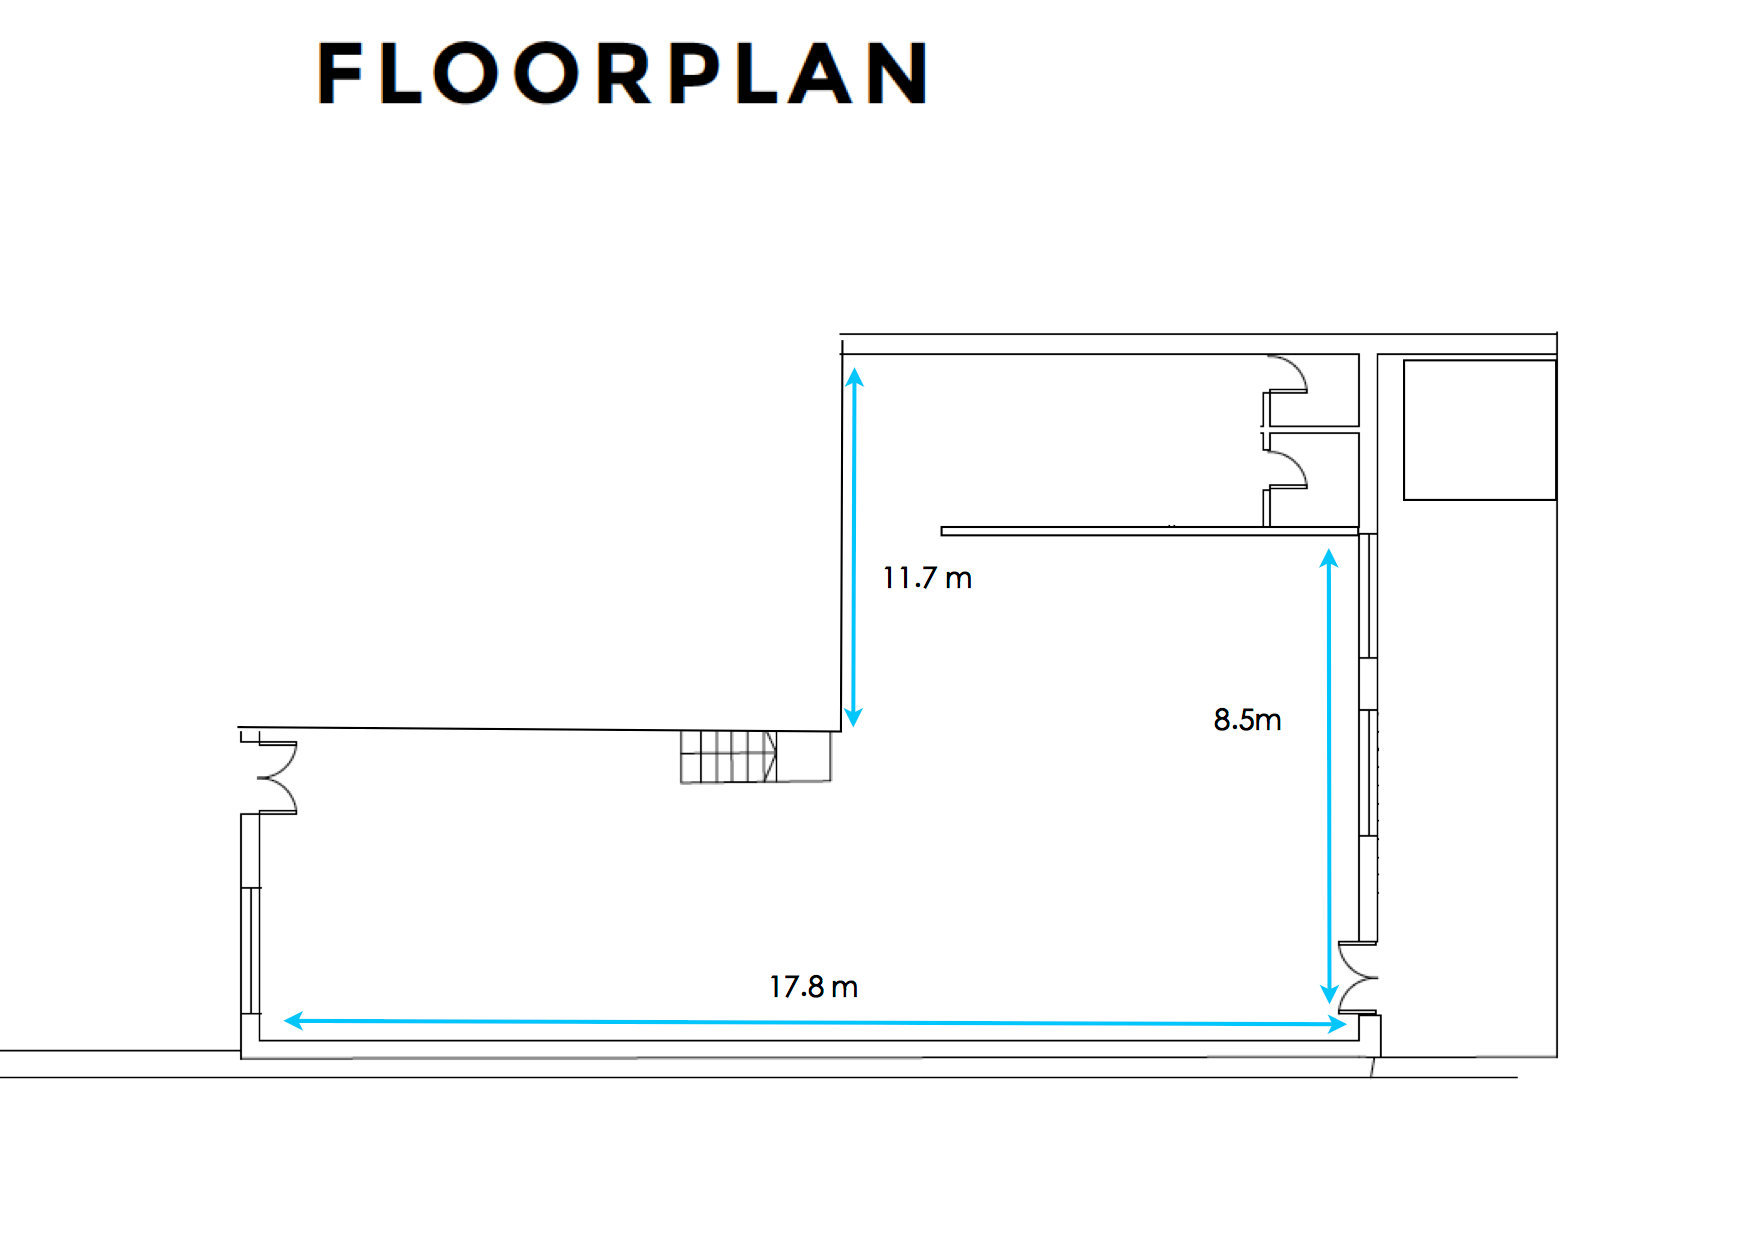 floorplan studio 2017.jpg